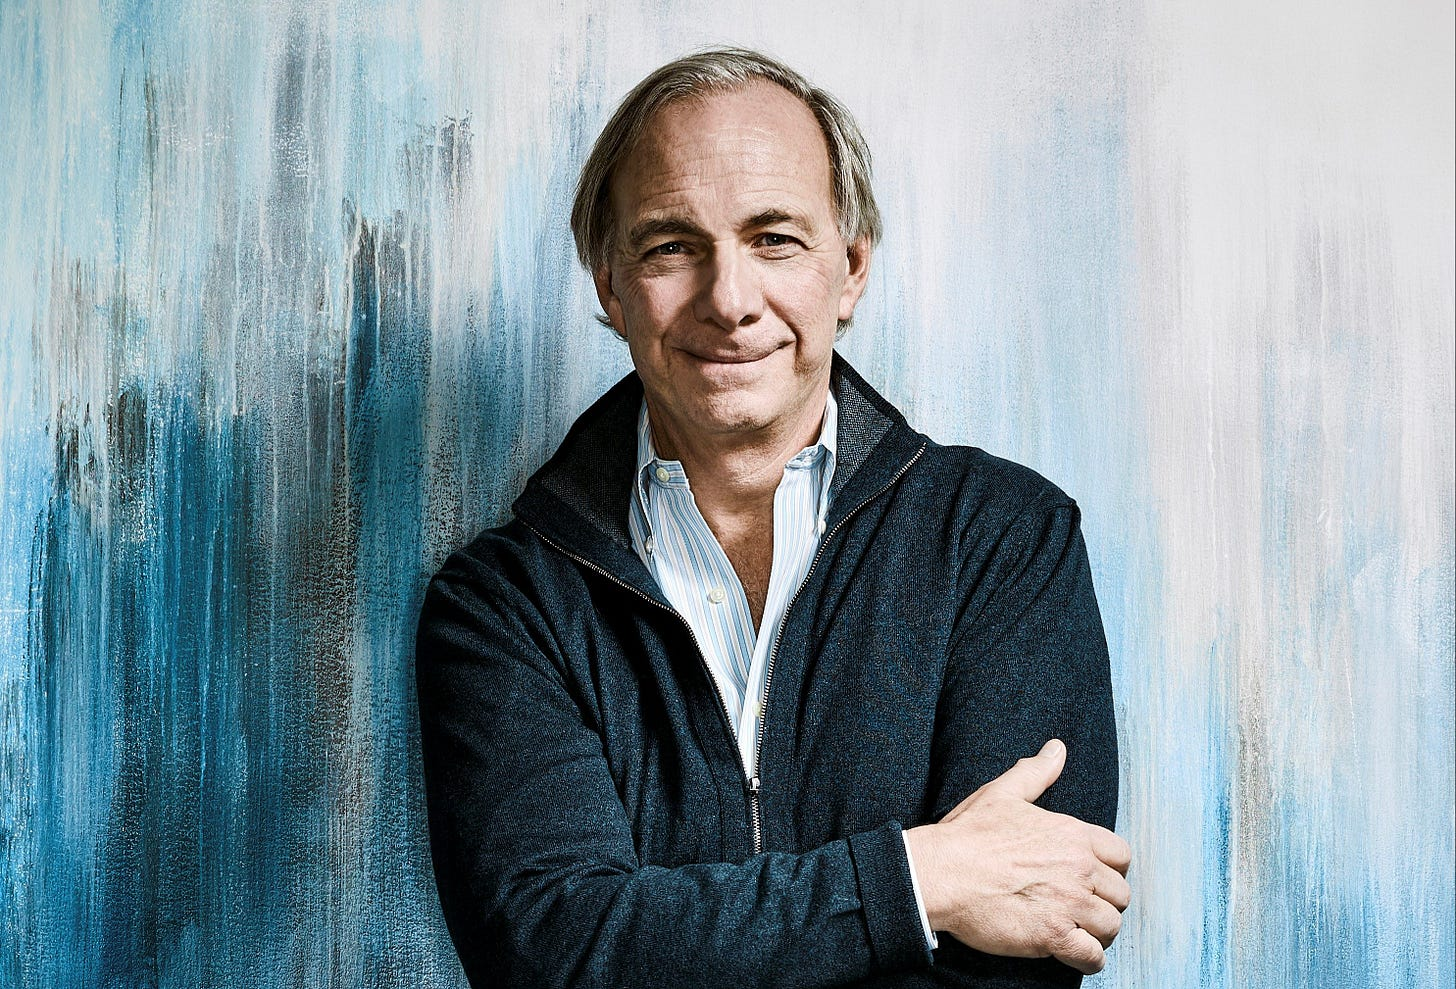 Citizen Ray: Bridgewater's Ray Dalio is the wise uncle you wished you had |  TechCrunch